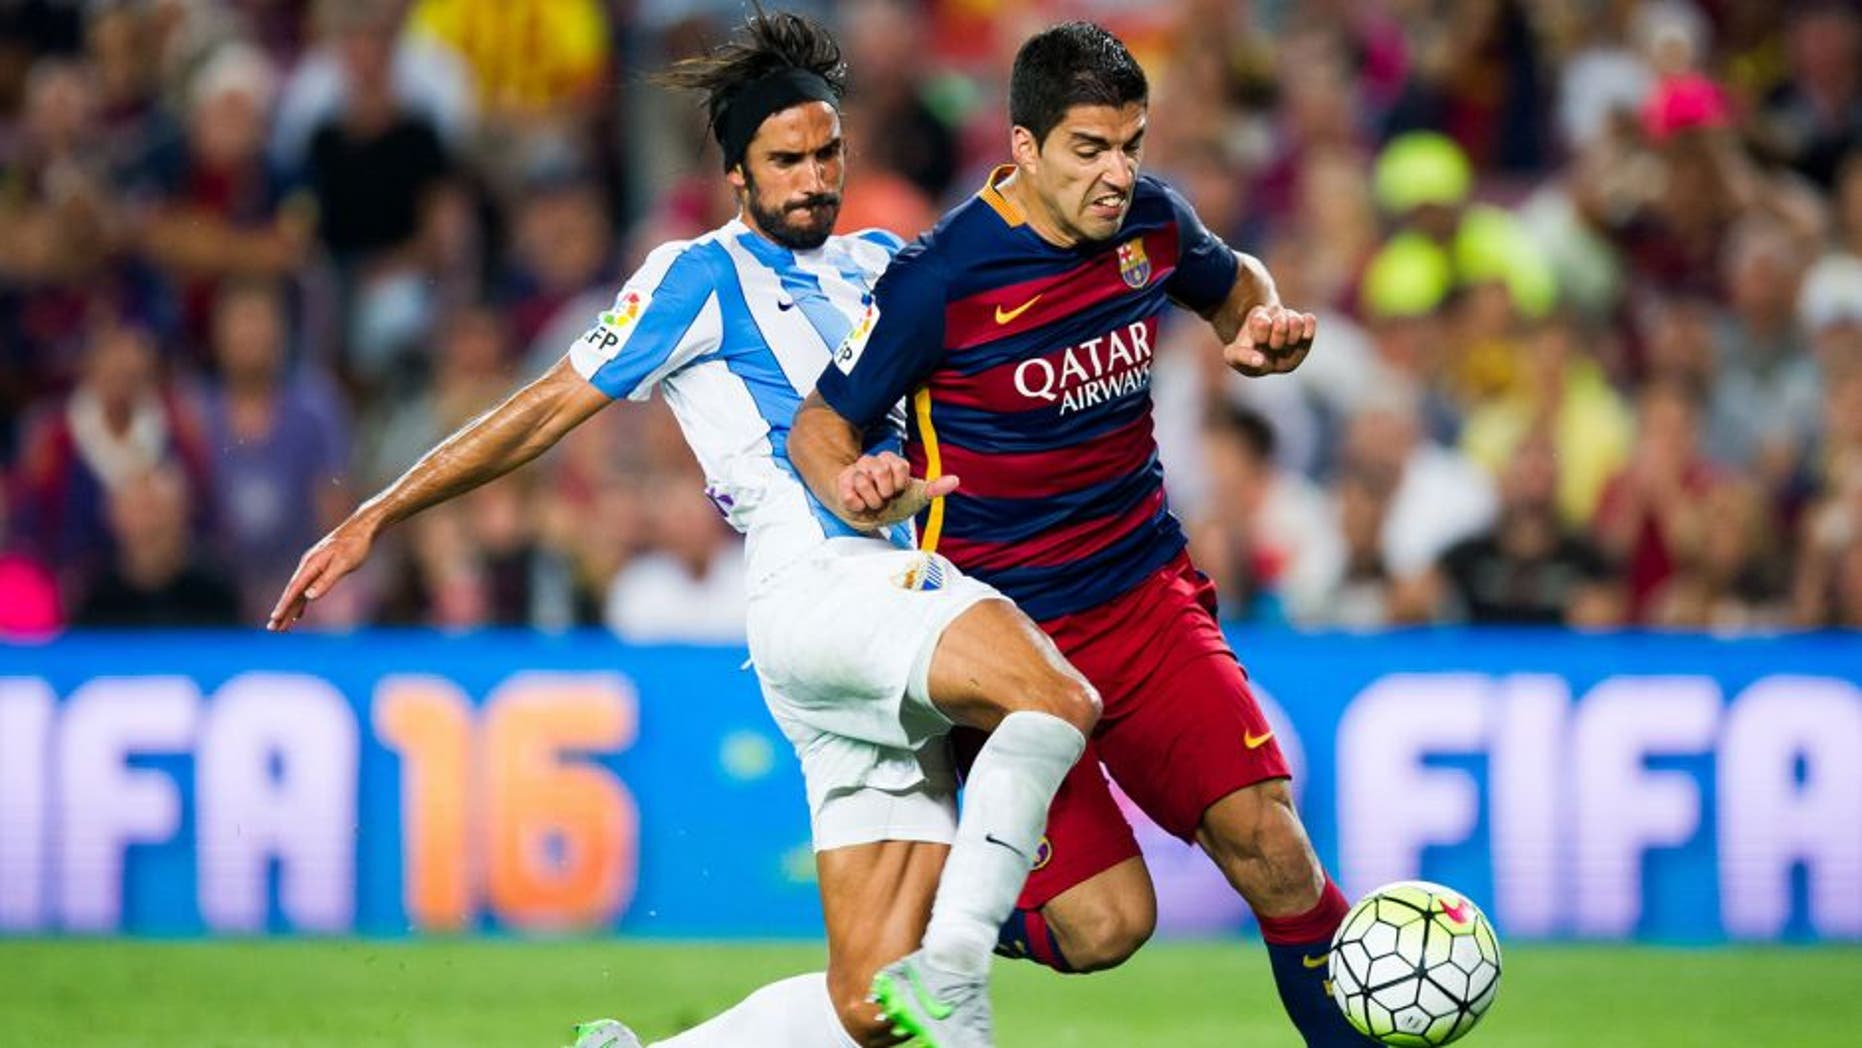 BARCELONA, SPAIN - AUGUST 29: Luis Suarez of FC Barcelona is brought down by Marcos Angeleri of Malaga CF during the La Liga match between FC Barcelona and Malaga CF at Camp Nou on August 29, 2015 in Barcelona, Spain. (Photo by Alex Caparros/Getty Images)